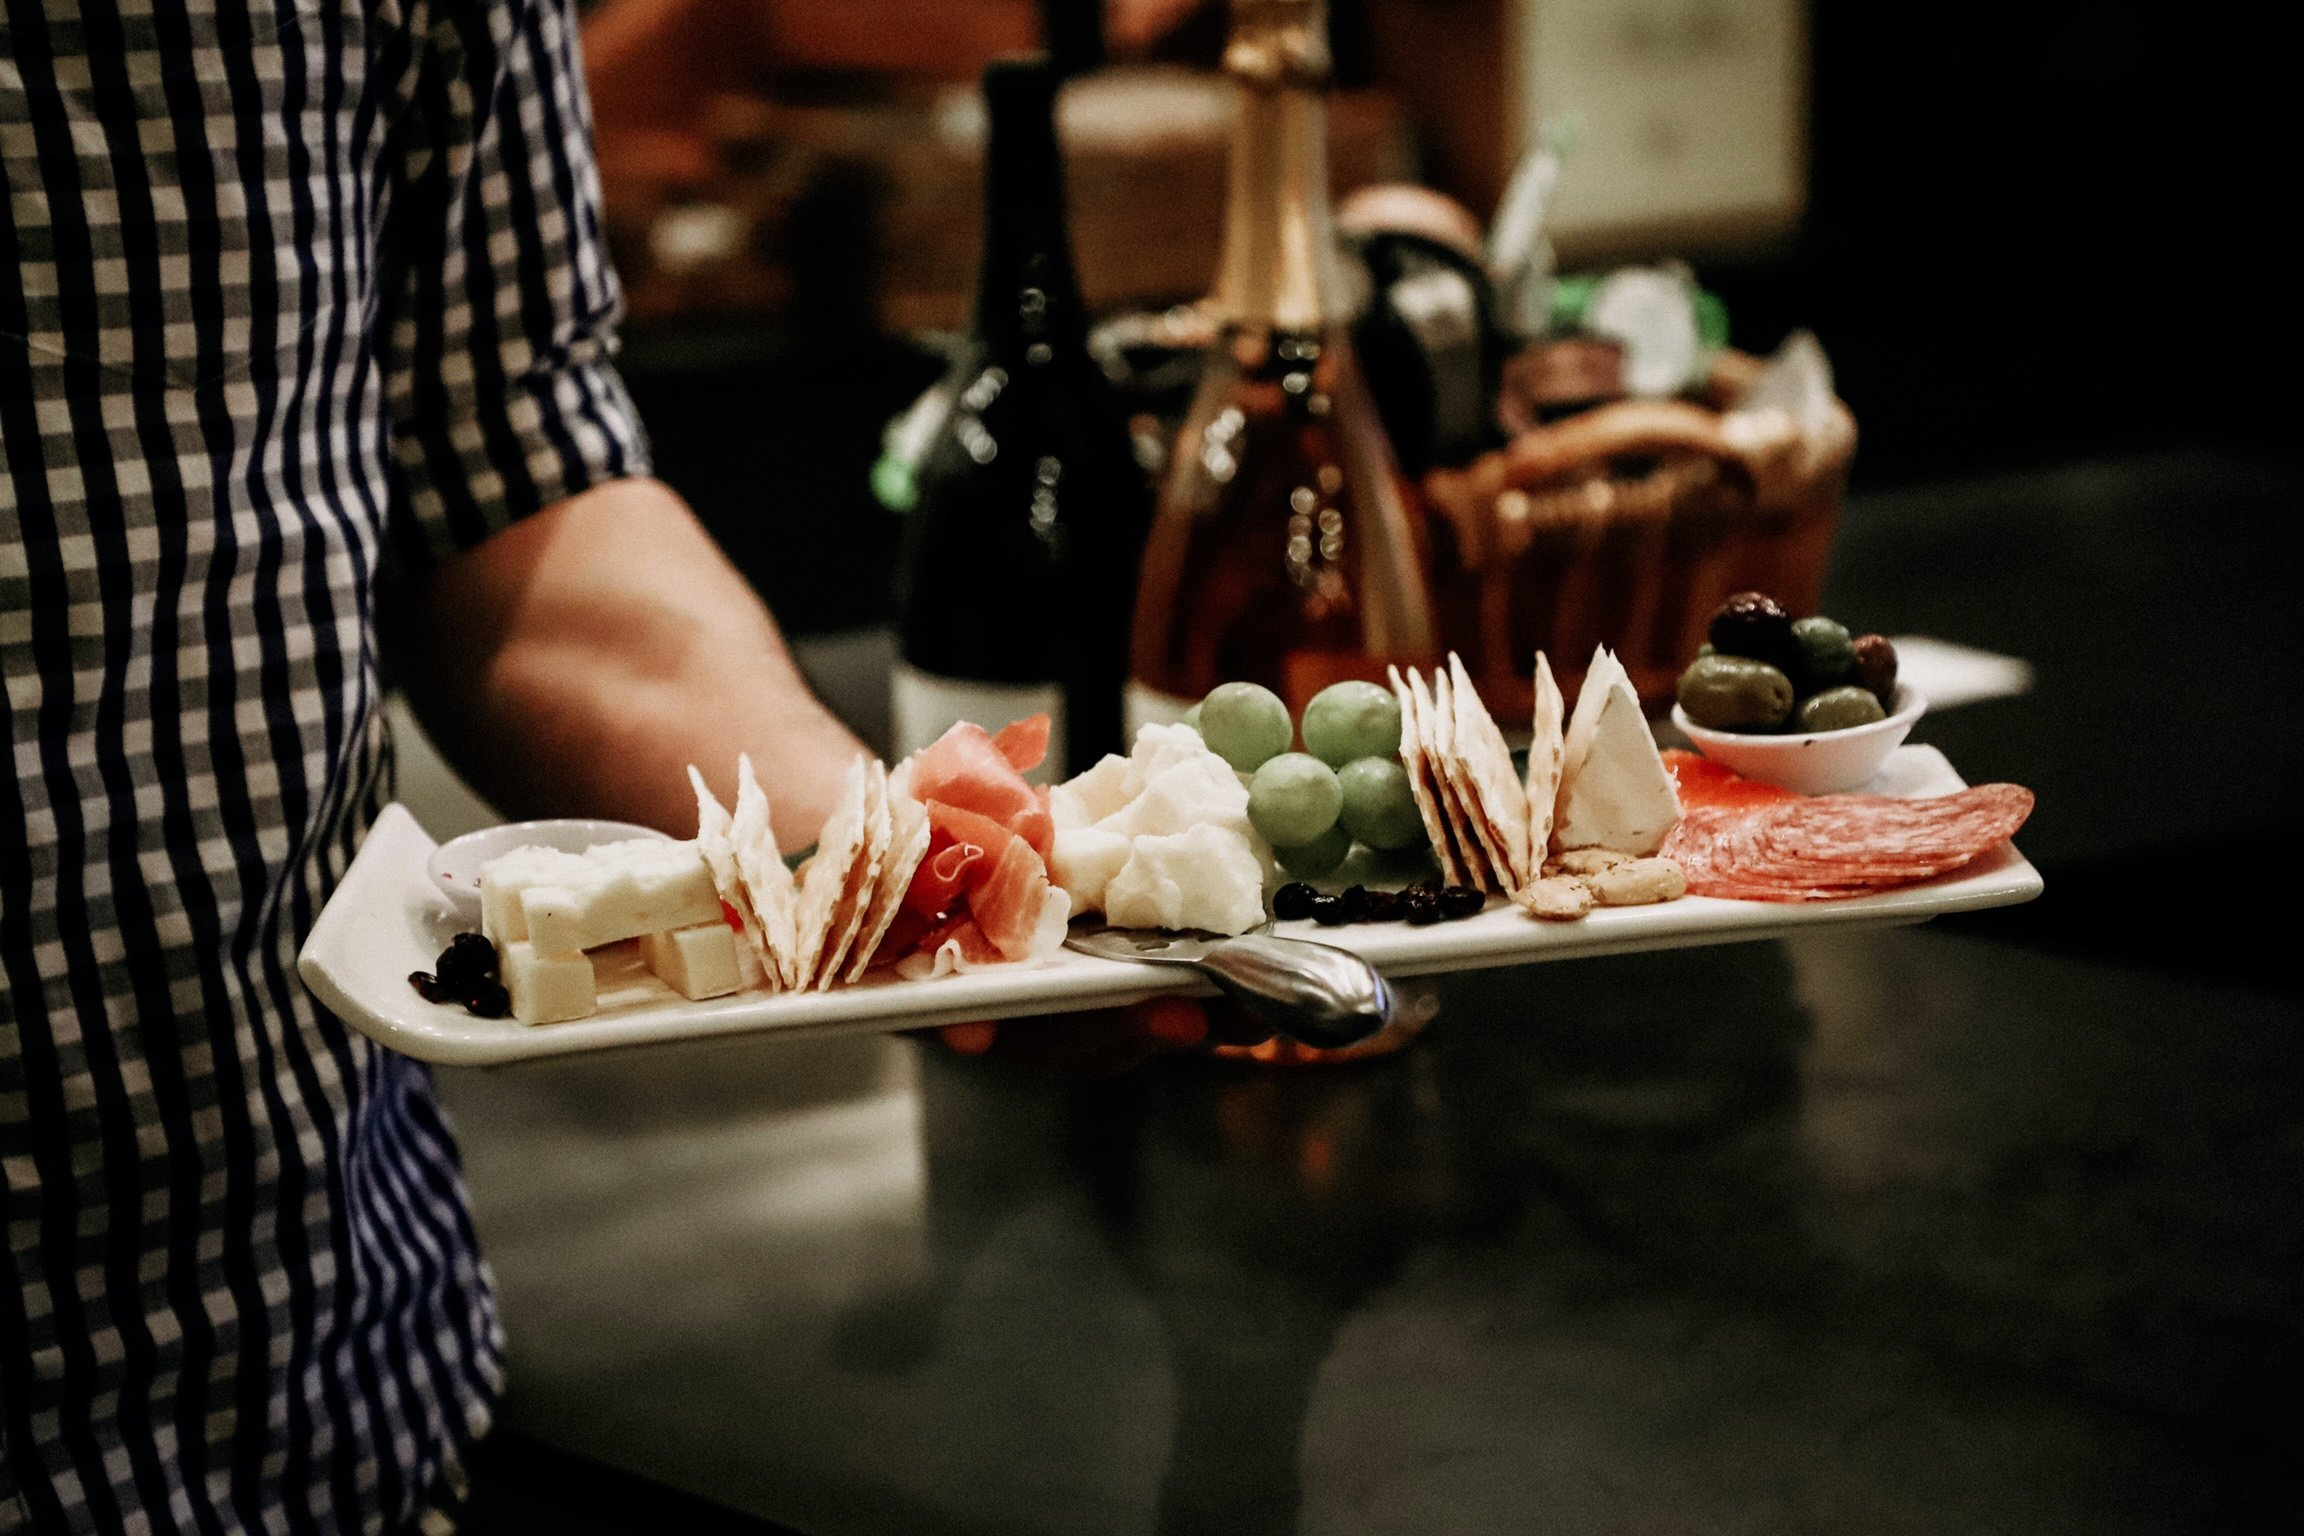 Man carries a charcuterie board to a table at Stoller Wine Bar Bend